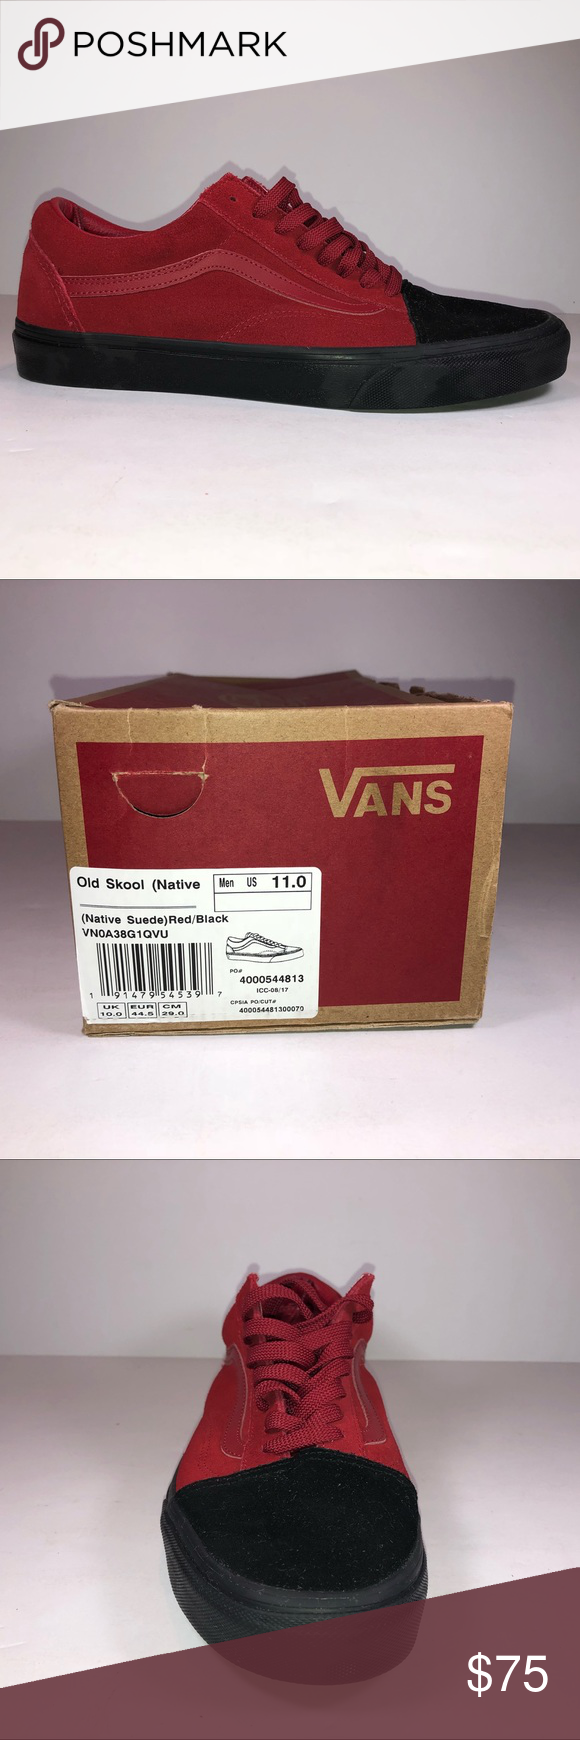 003cbb6b02 I just added this listing on Poshmark  Vans Old Skool Native Suede Red    Black Sneakers.  shopmycloset  poshmark  fashion  shopping  style  forsale   Vans   ...